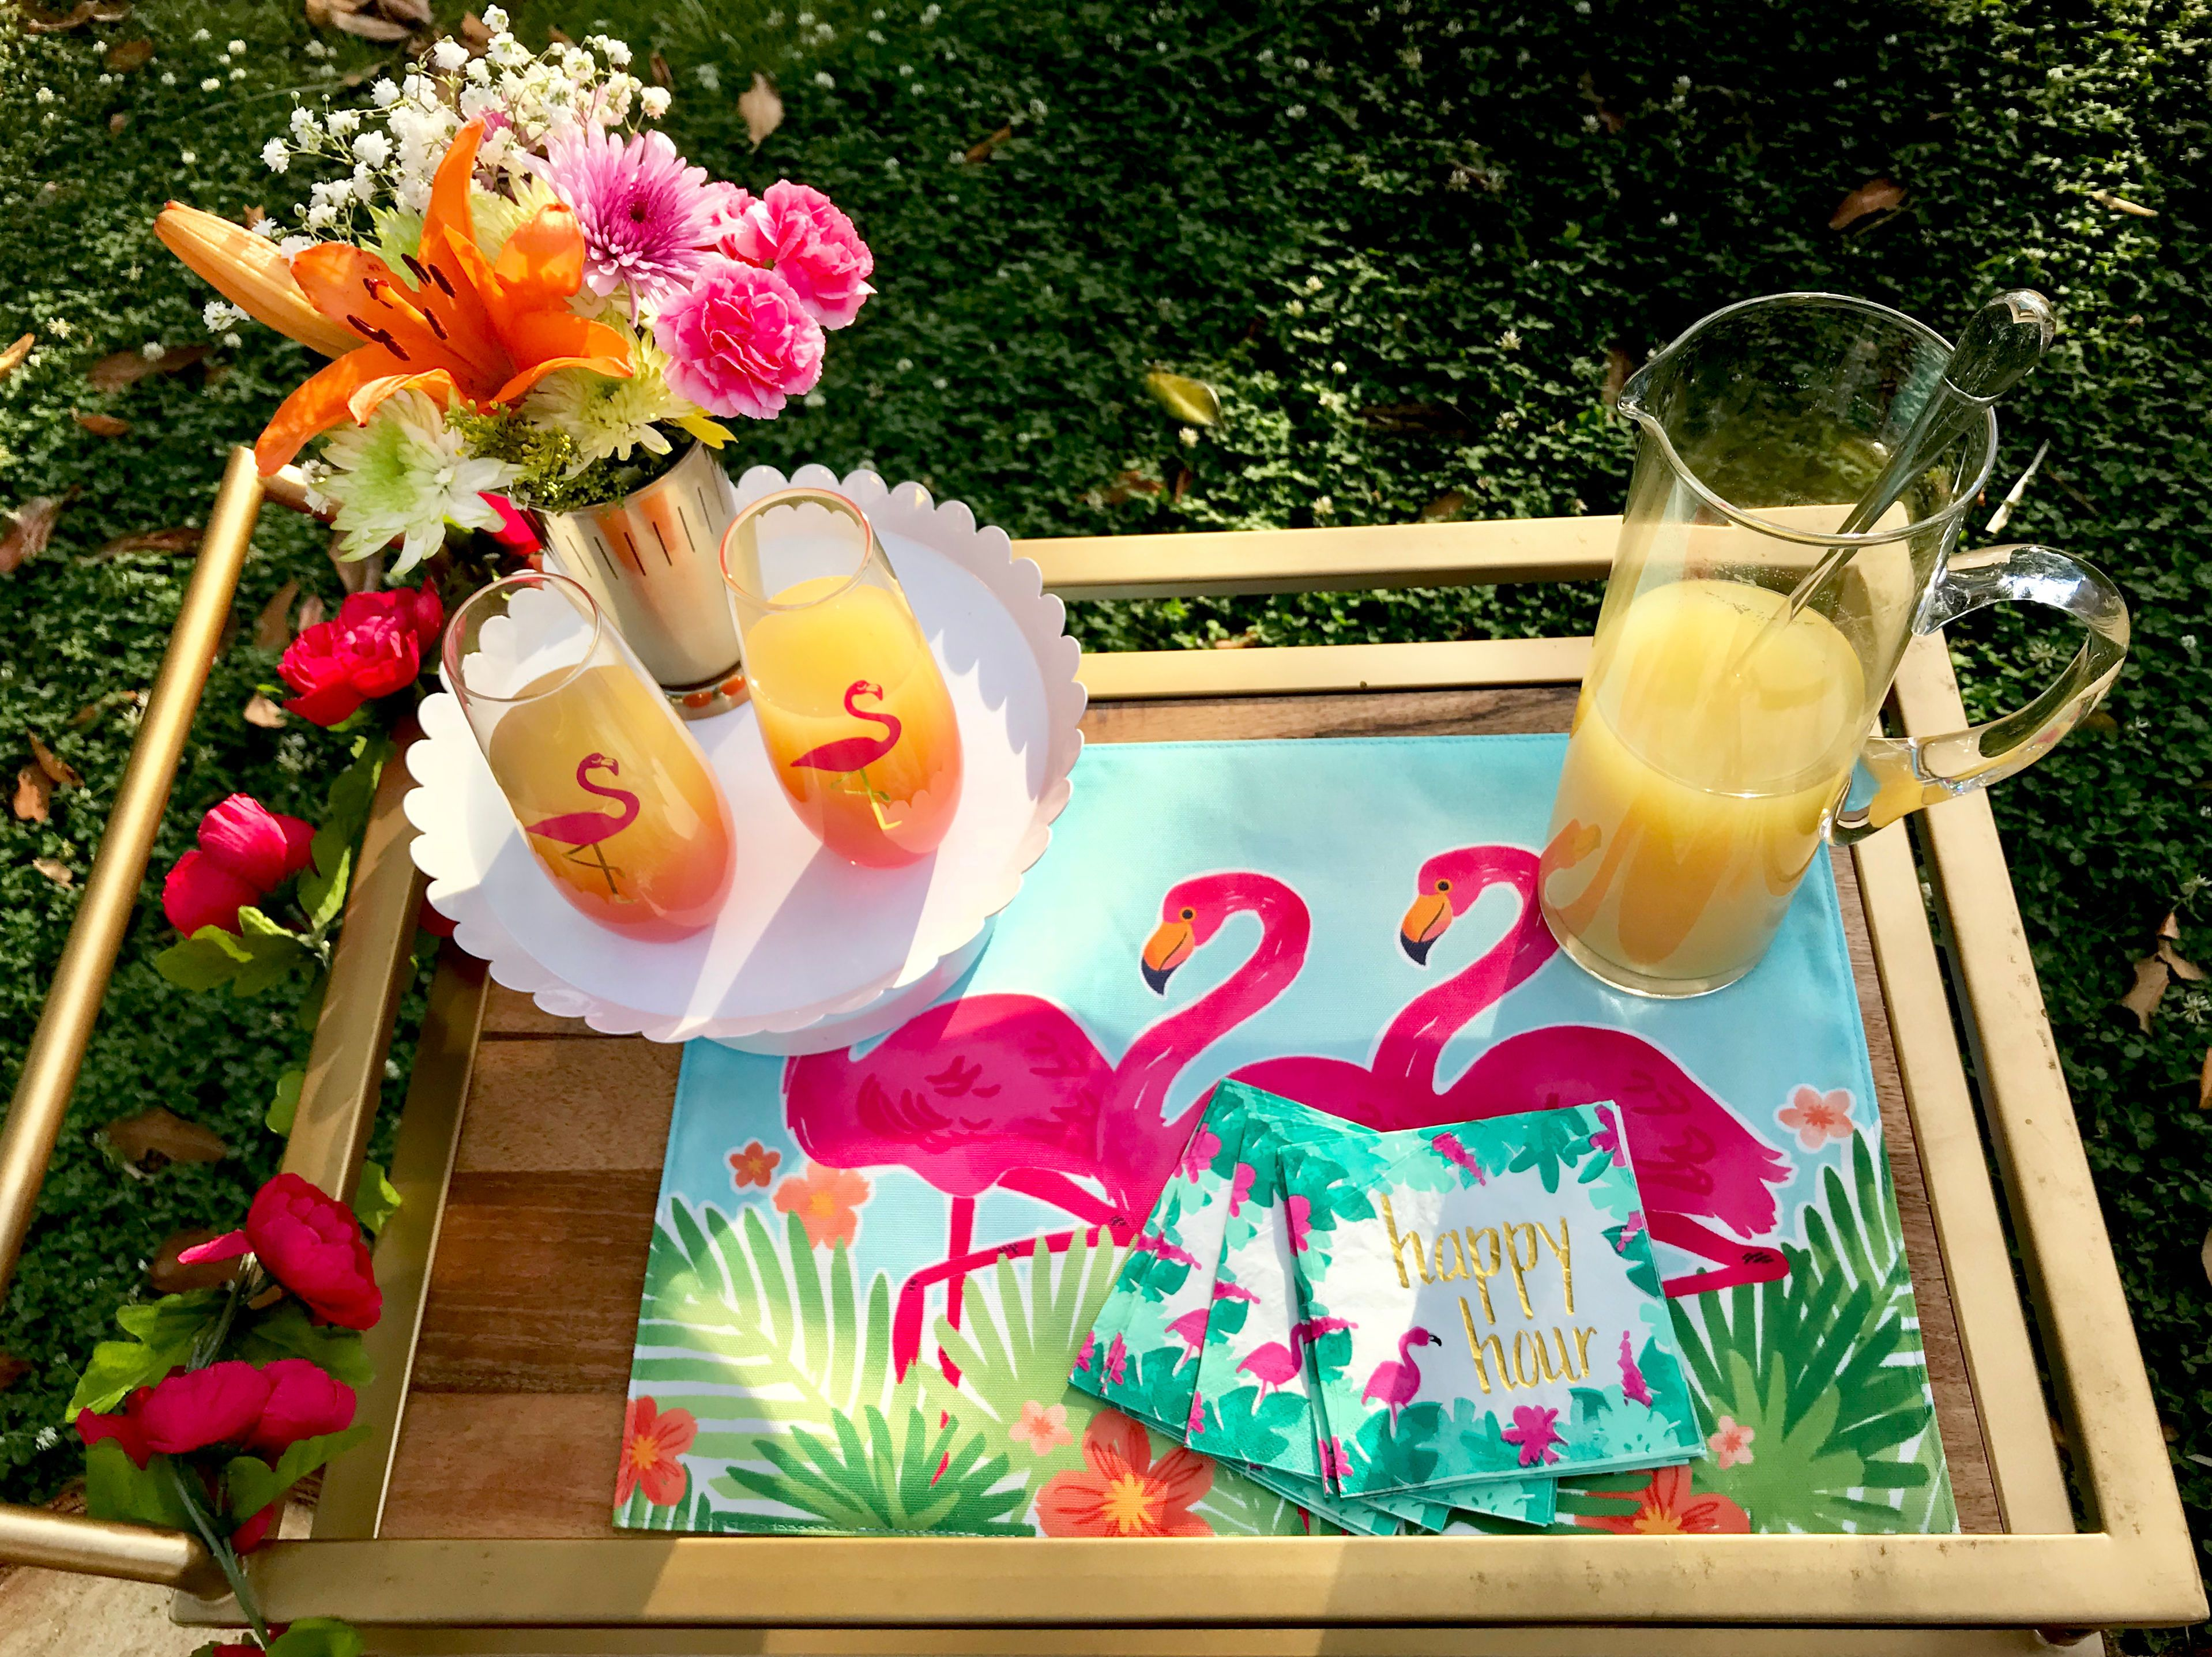 Tropical Flamingo Dinner Party Bar Cart #Flamingo #Flamingoparty #Pineapplemimosas #Mimosas